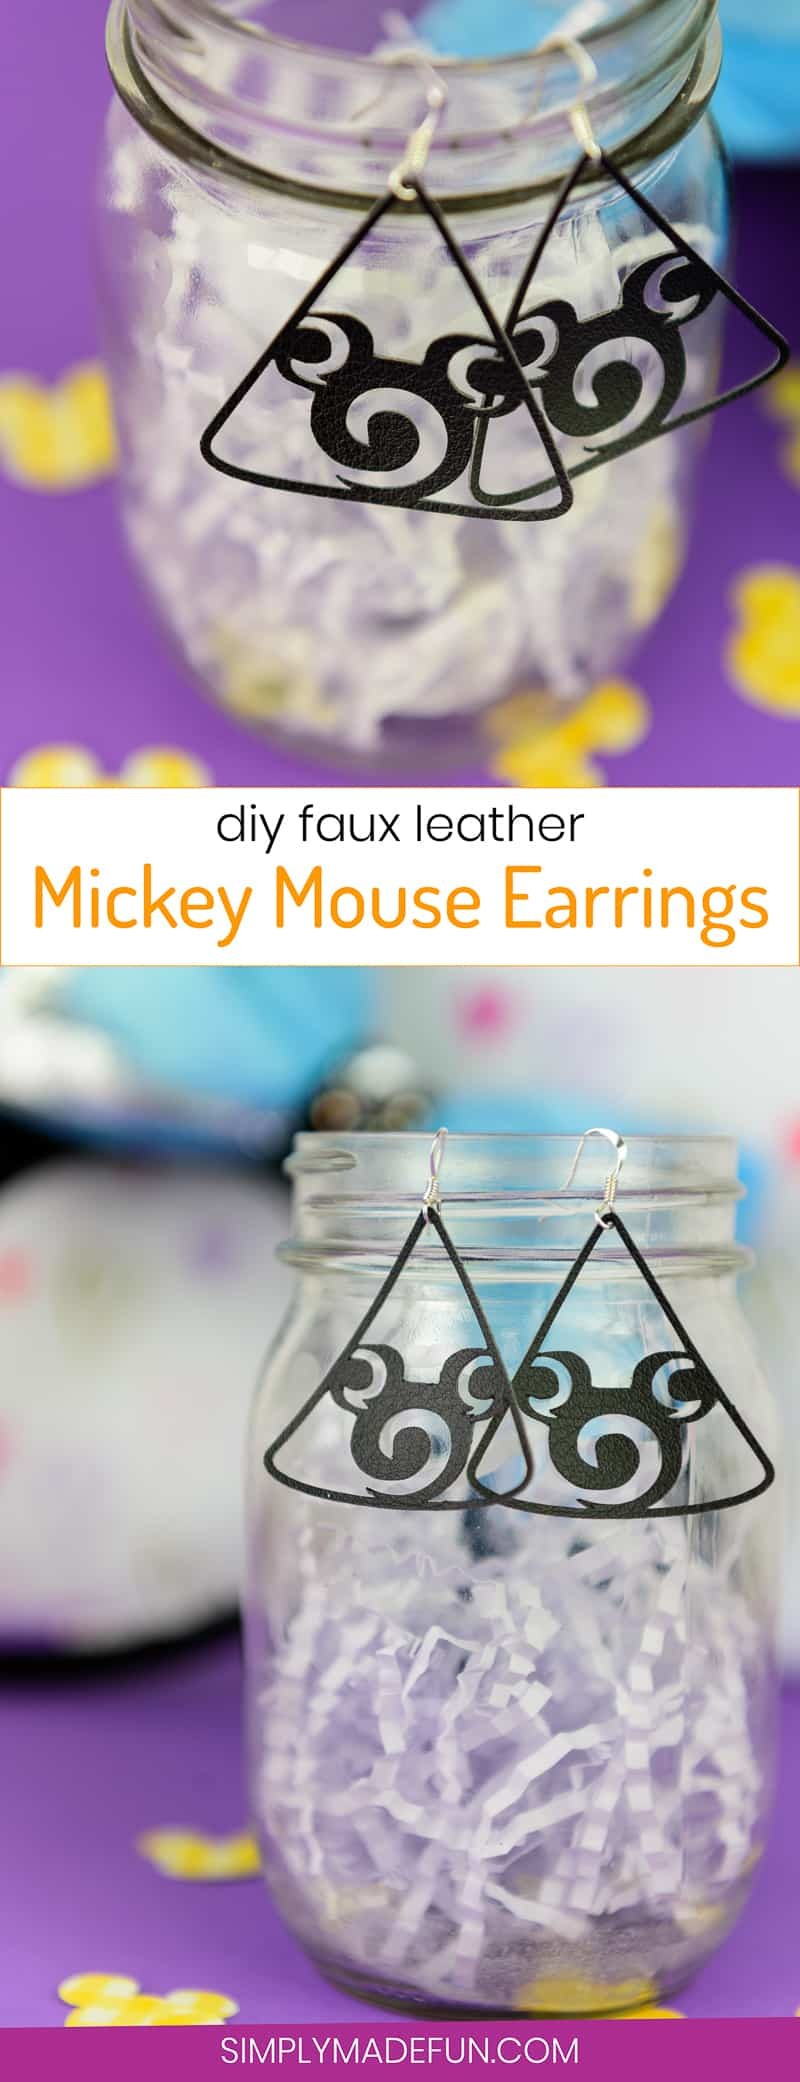 Faux Leather Mickey Mouse Earrings - If you hate heavy earrings as much as I do you'll love using faux leather to make stylish and lightweight ones of your own! You can buy leatherette from the Silhouette Store and DIY your own faux leather mickey mouse earrings with your Silhouette machine, just in time for your next Disney vacation!